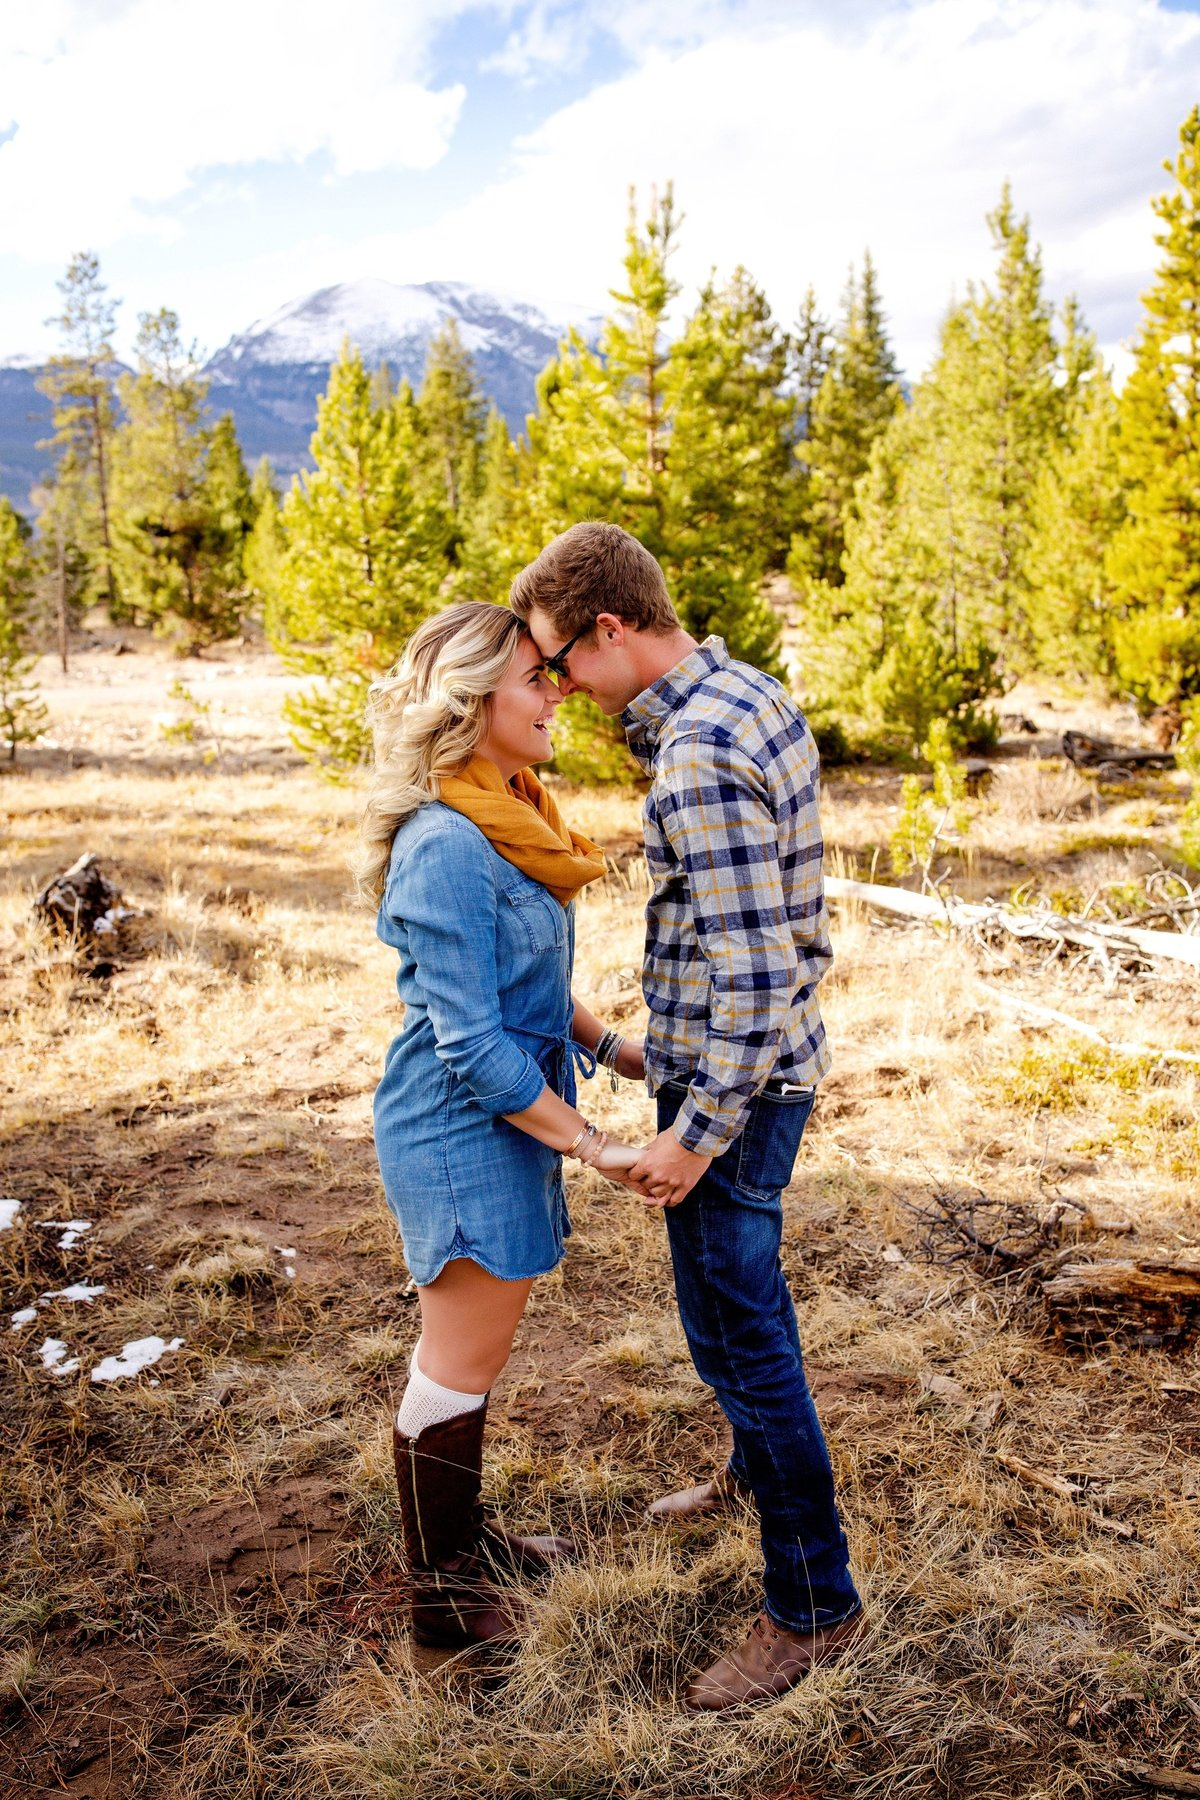 Alisa Messeroff Photography, Alisa Messeroff Photographer, Breckenridge Colorado Photographer, Professional Portrait Photographer, Couples Photographer, Couples Photography 11